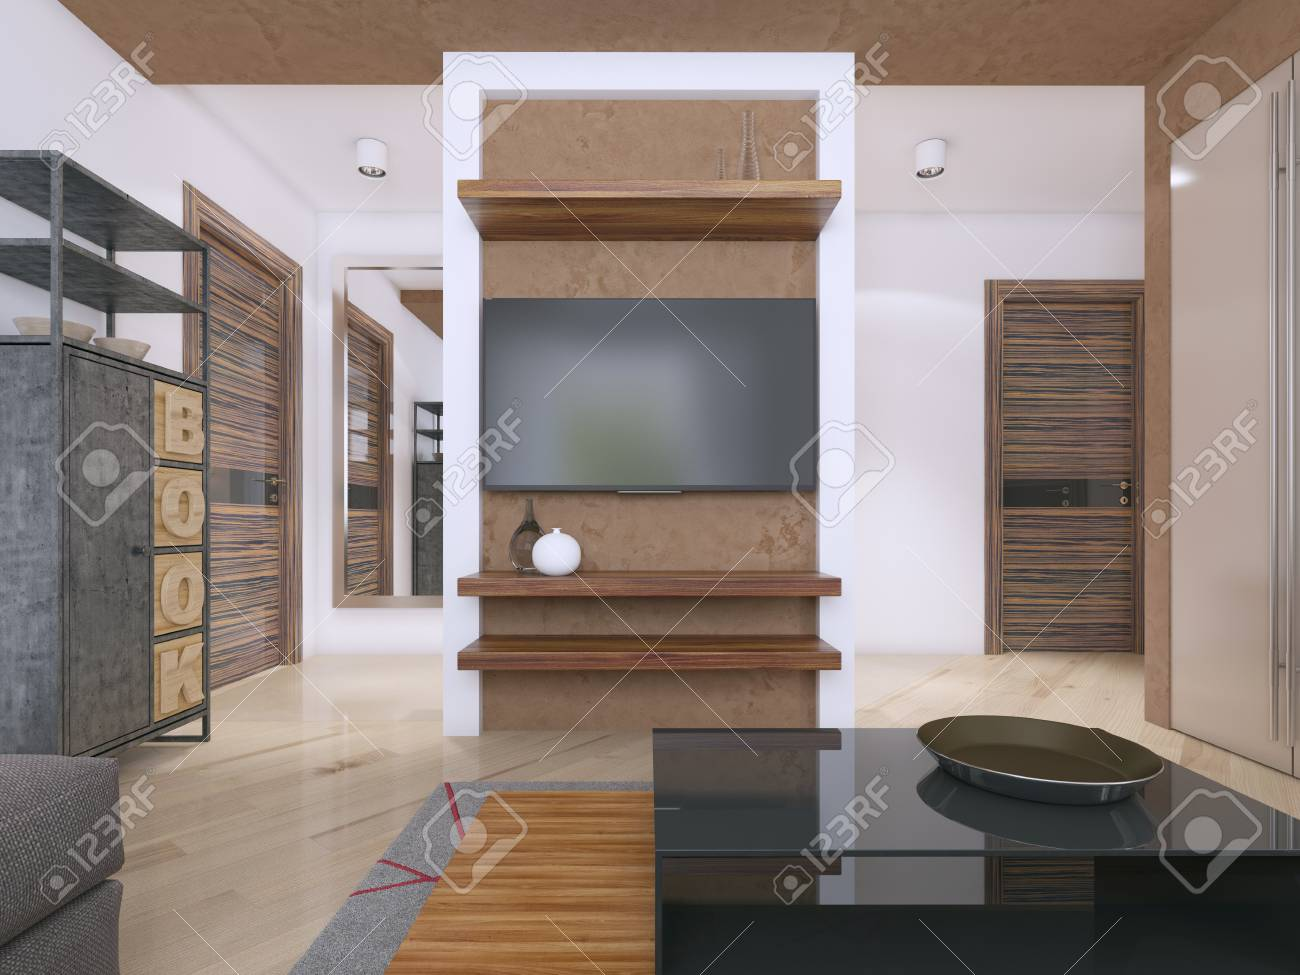 Designer Tv Unit In The Modern Living Room 3d Rendering Stock Photo Picture And Royalty Free Image Image 113303762